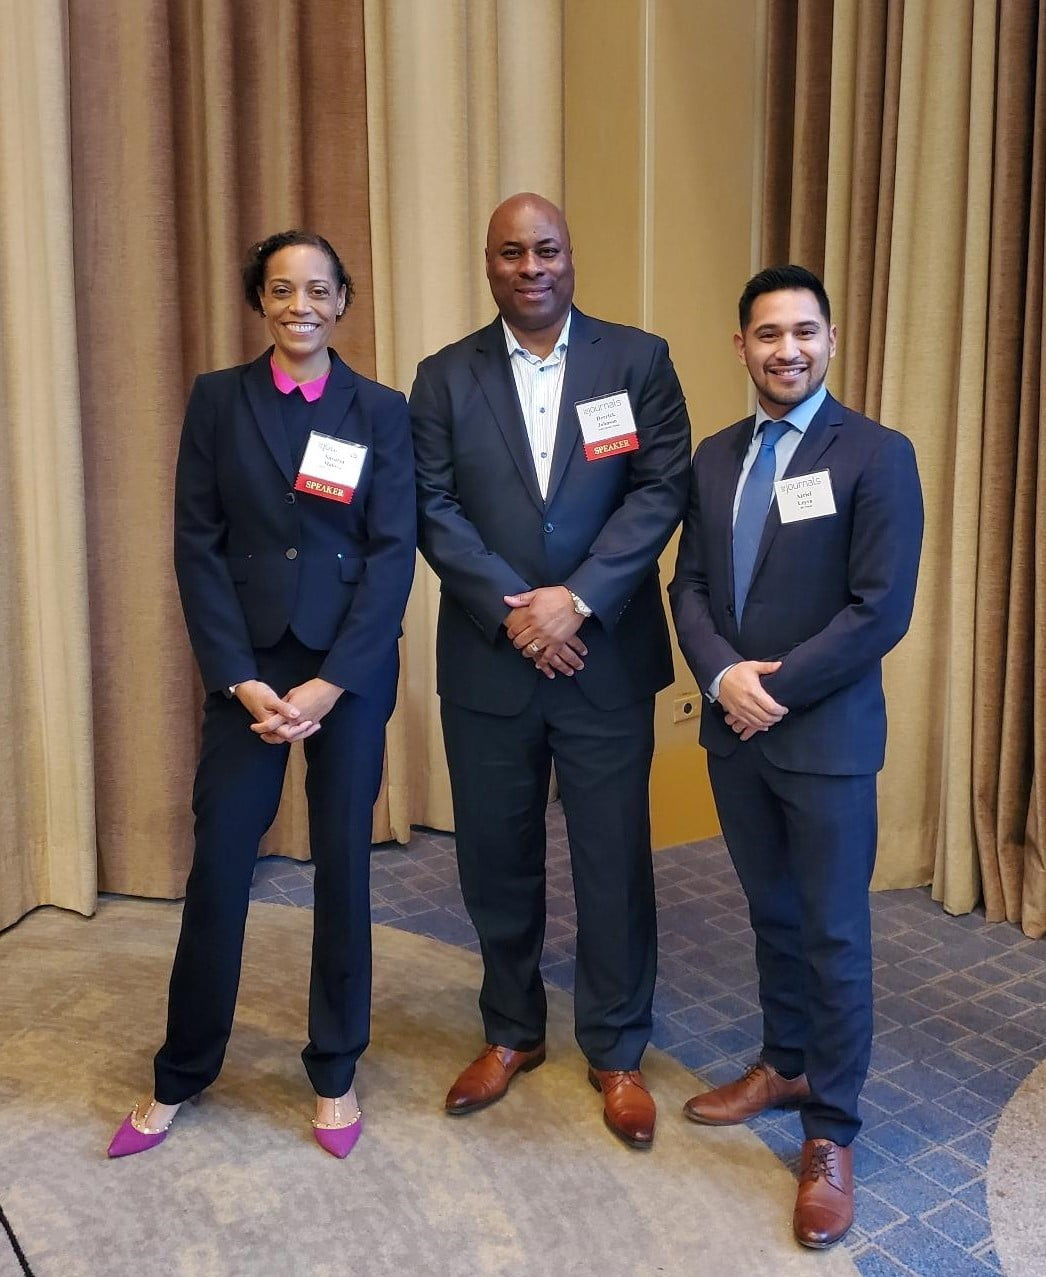 Nasutsa Mabwa of ServiceMaster Restoration by Simons Key Moderator for the 18th Annual Commercial Real Estate Forecast Conference, Hyatt Regency Chicago